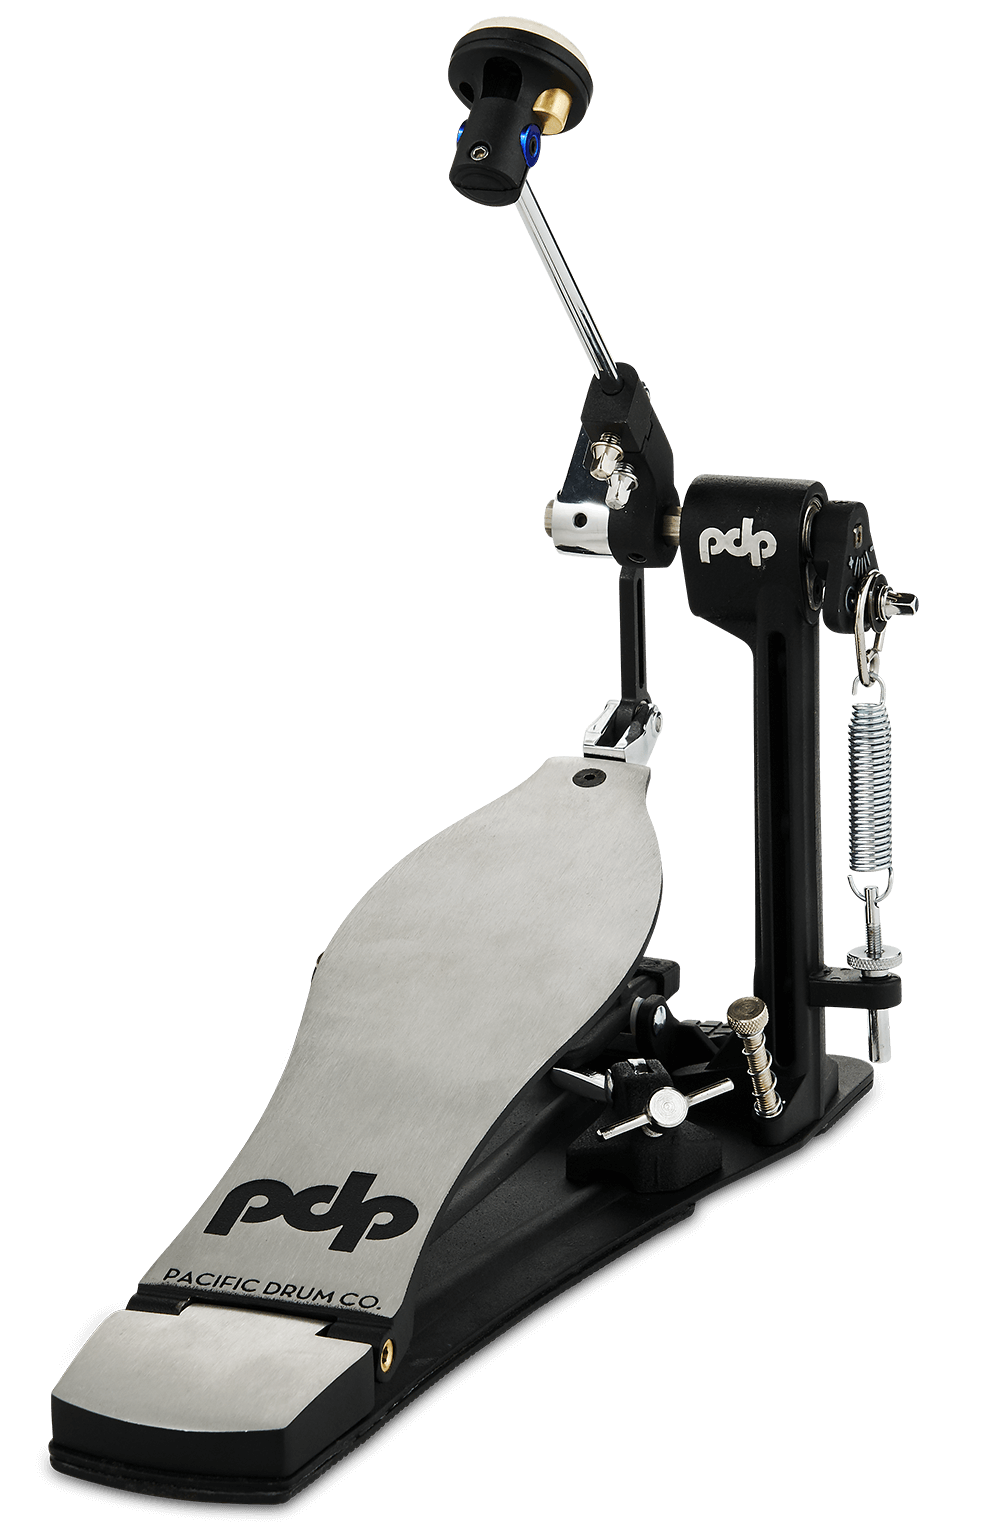 PDSPCOD - PDP Concept Series Direct Single Pedal